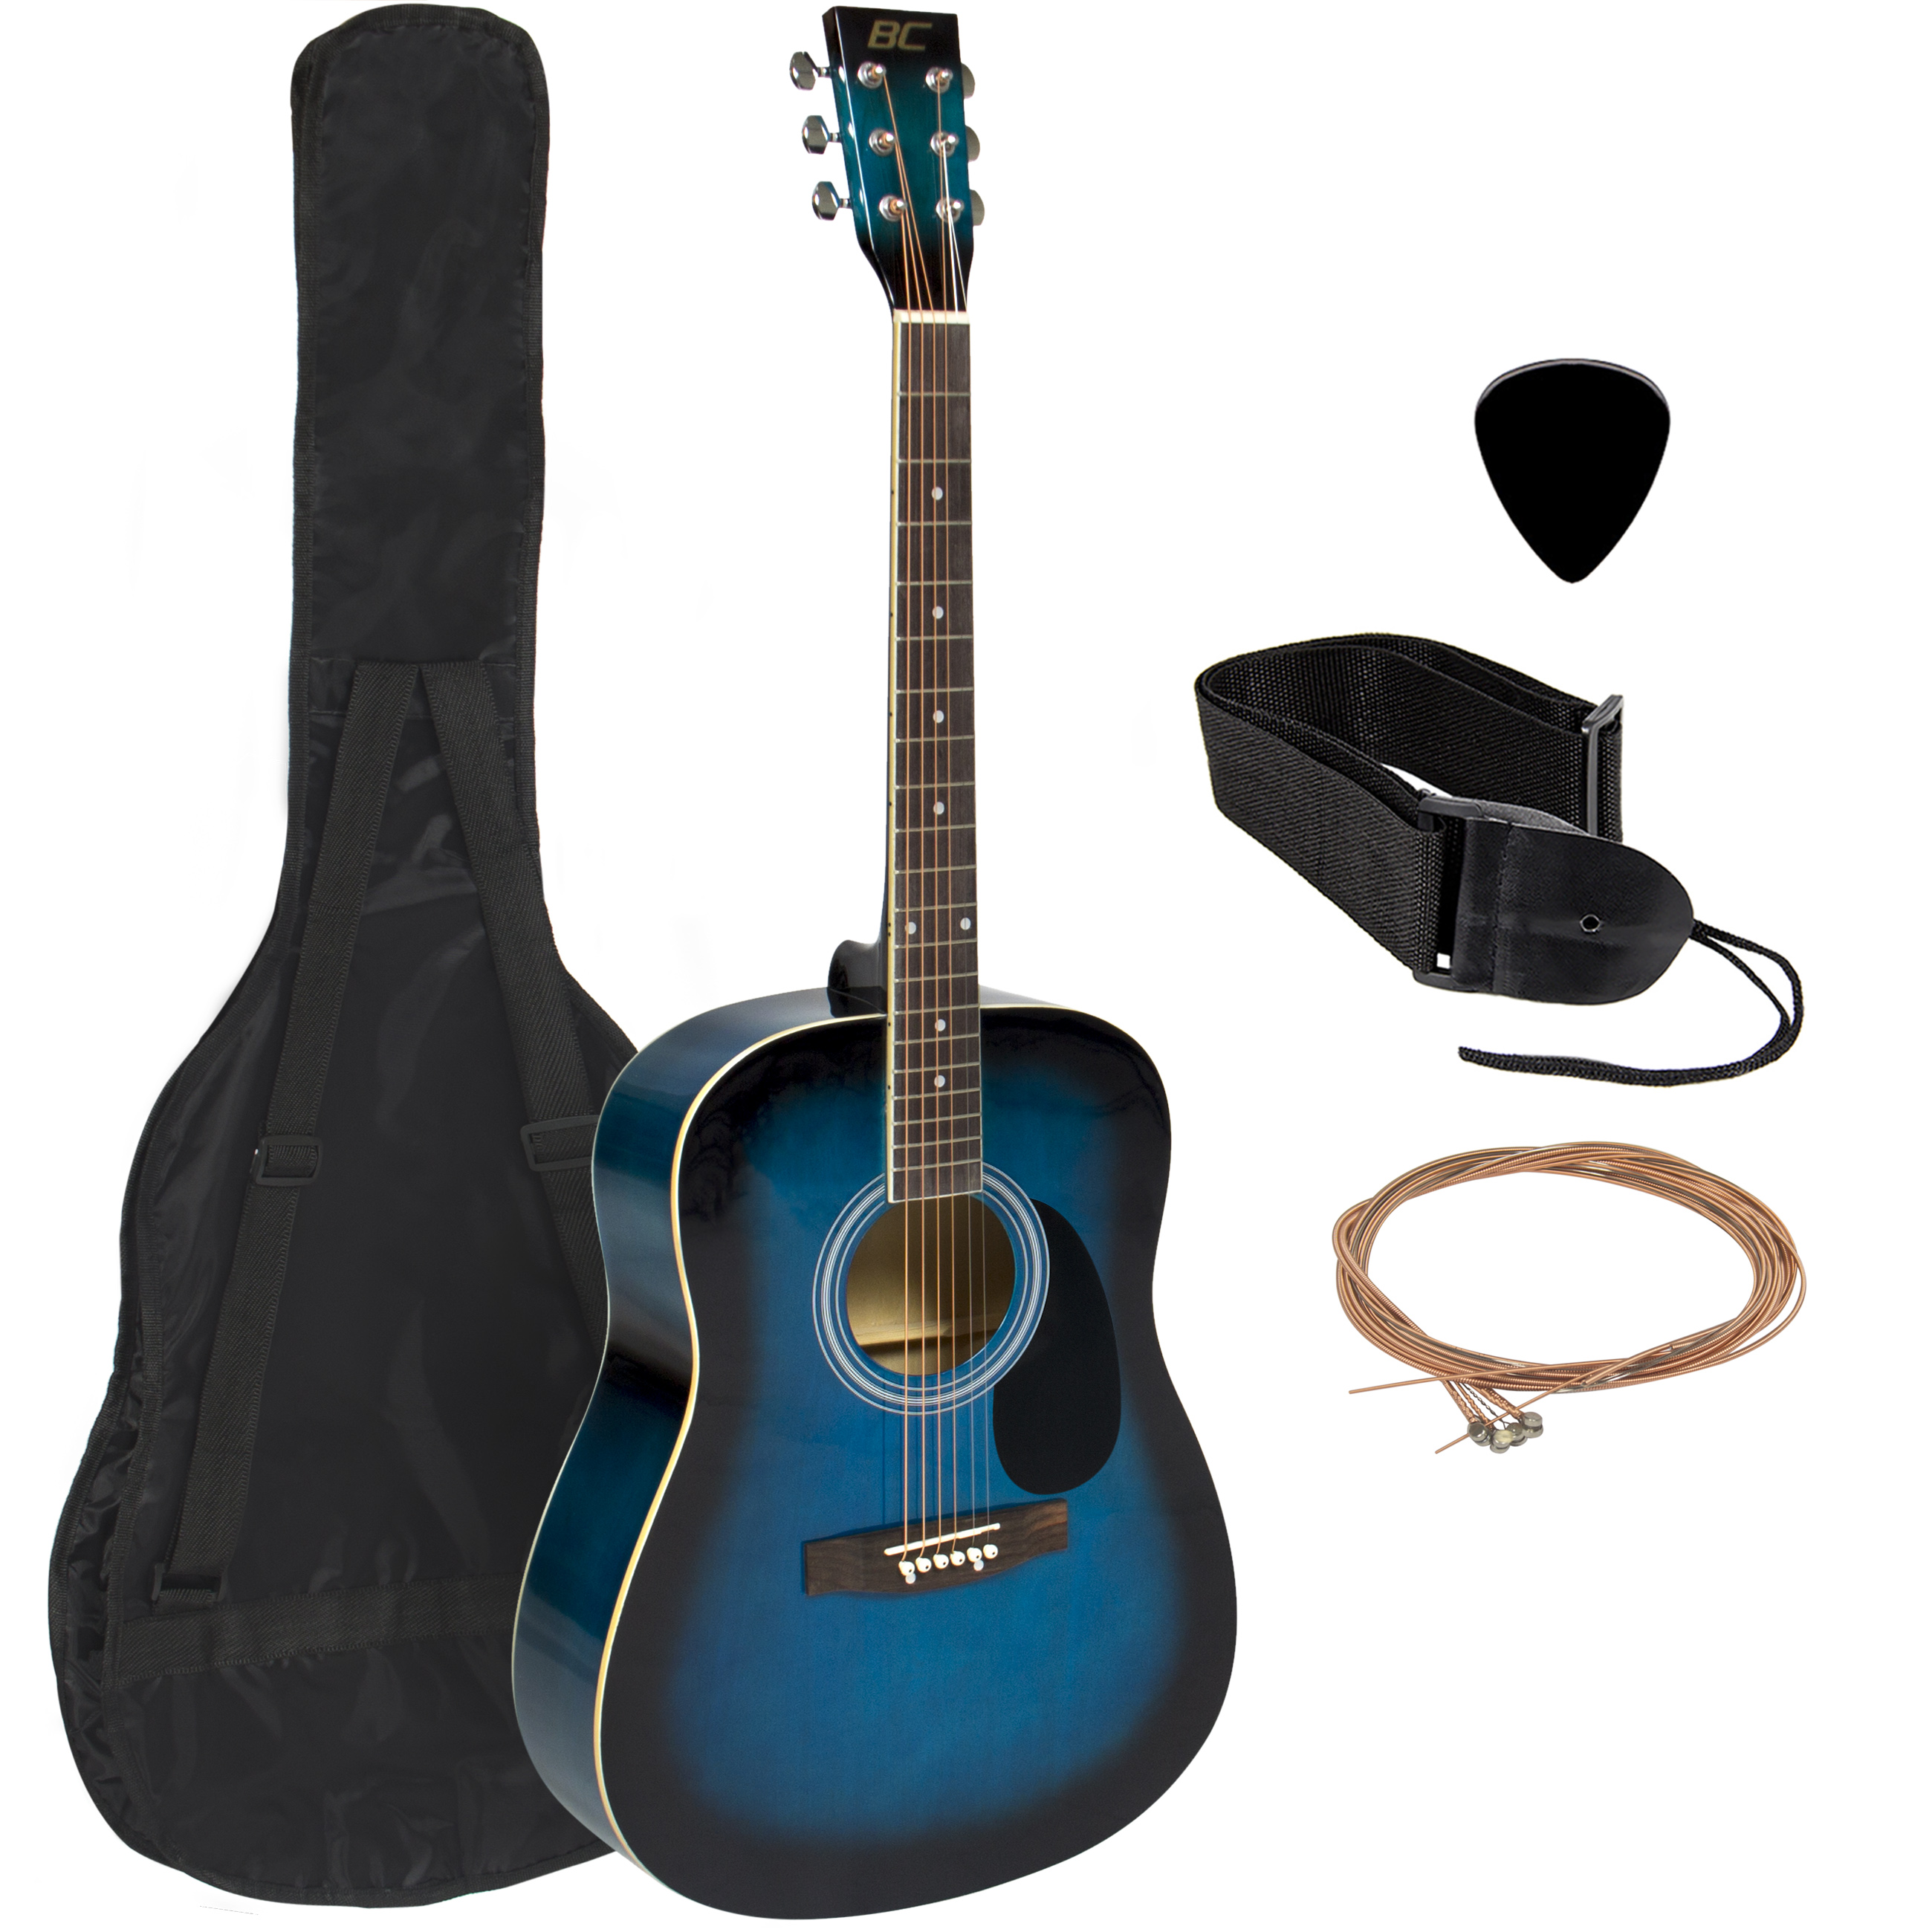 "Acoustic Guitar 41"" Full Size Adult w/ Guitar Pick & Accessories - Blue"